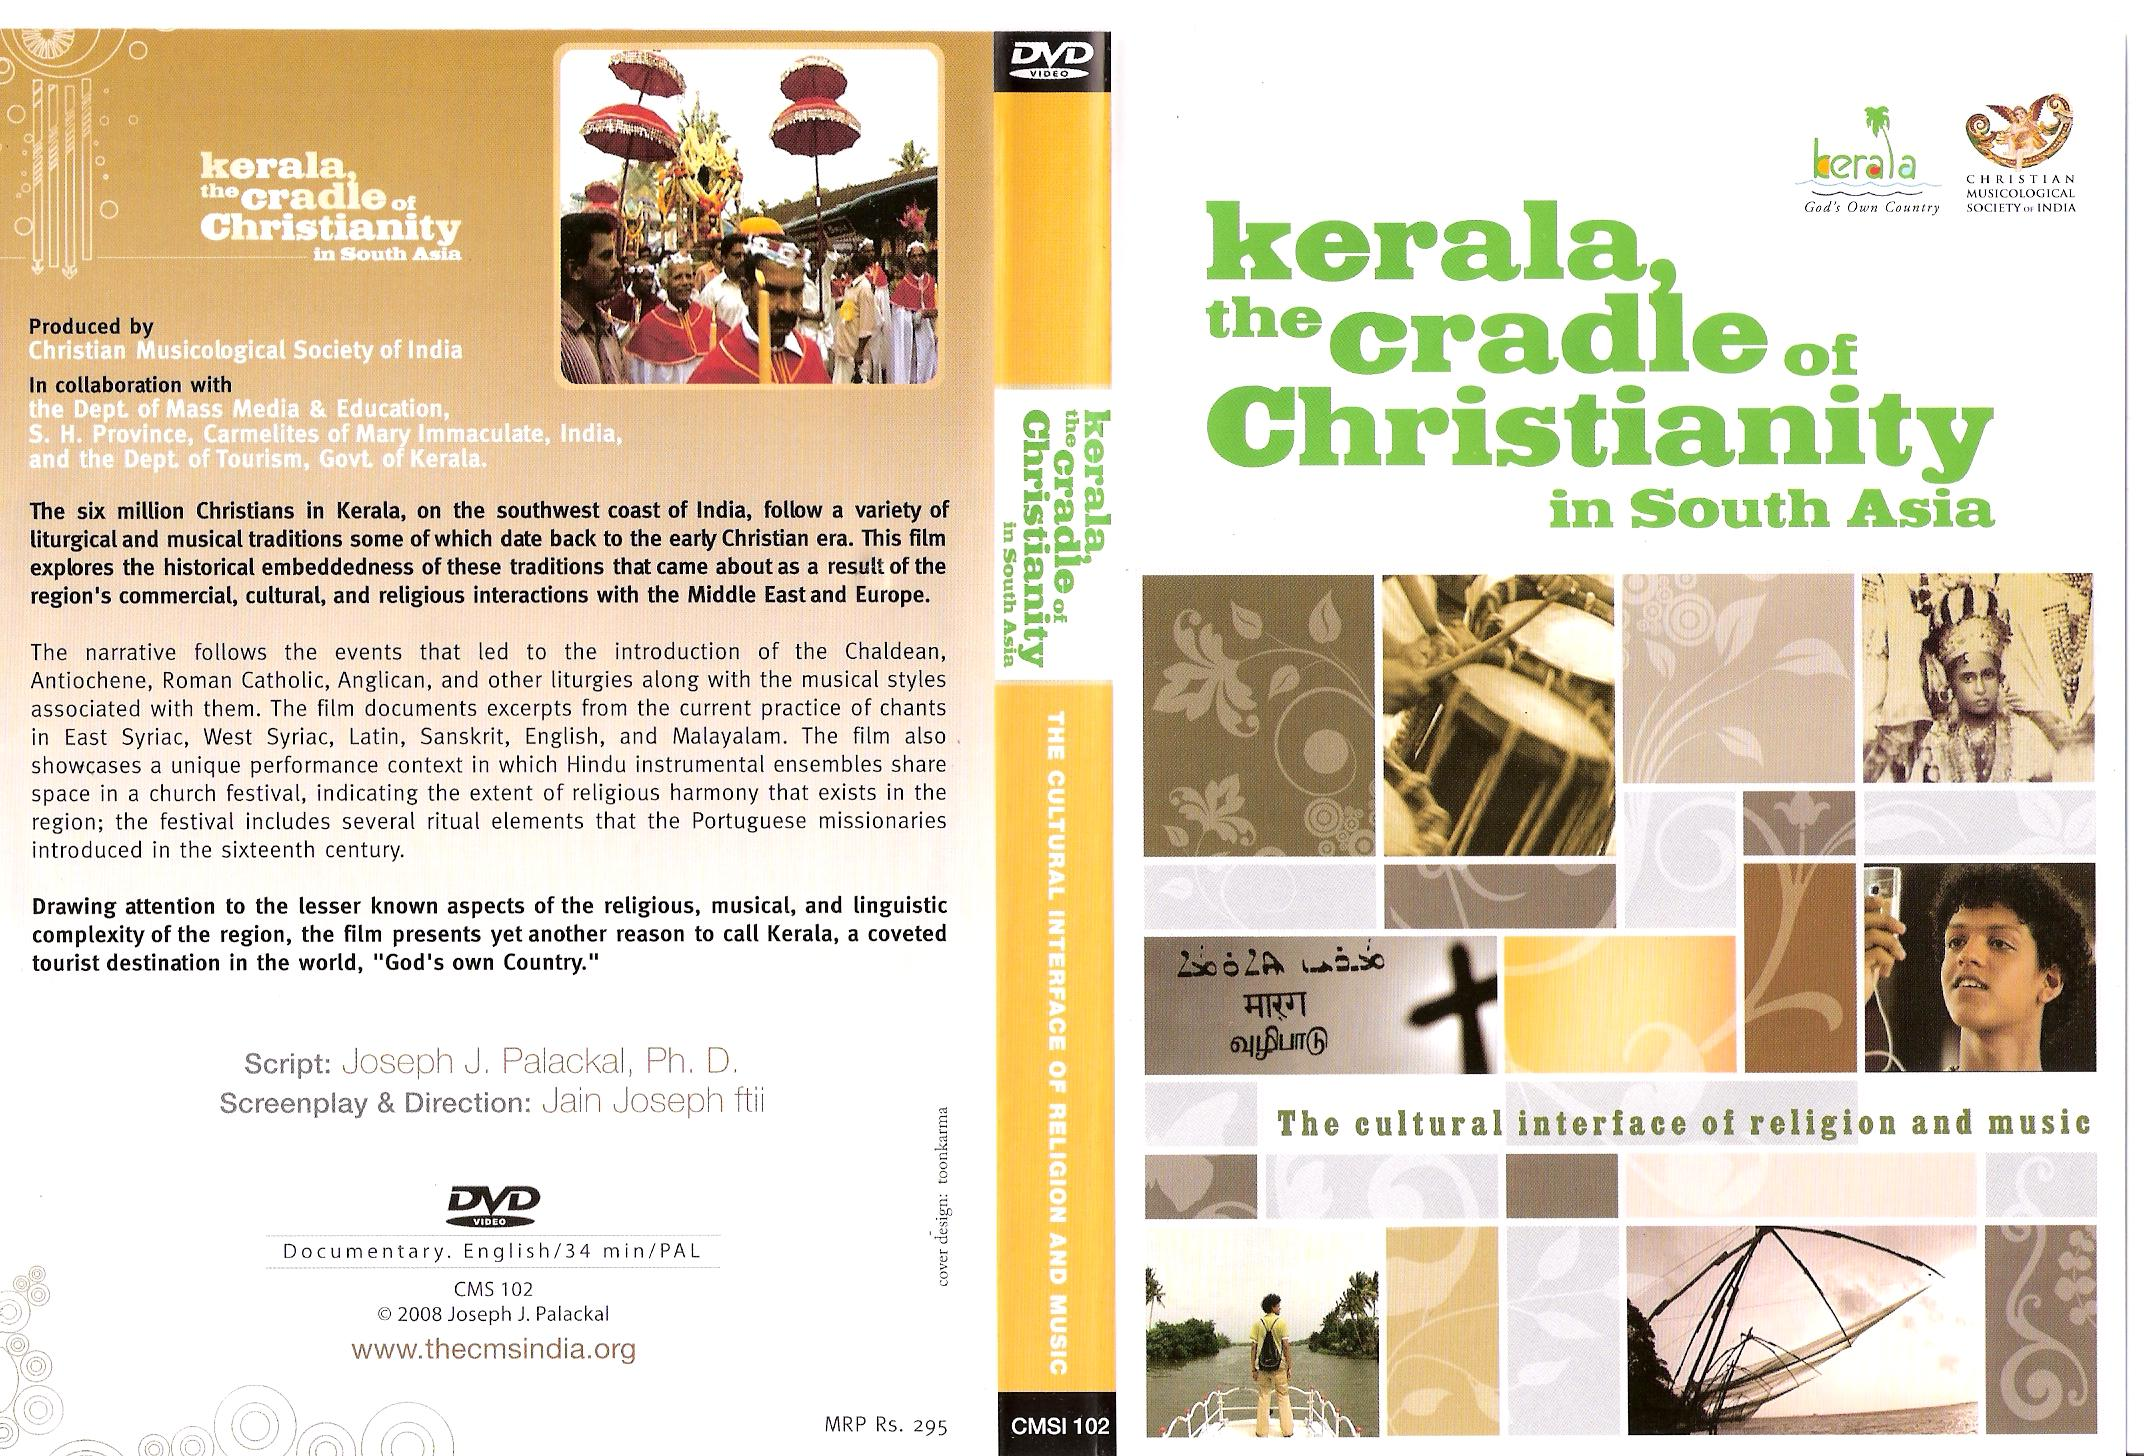 """Kerala, the Cradle of Christianity in South Asia""-a DVD Documentary on the cultural interface of religion and music- An eye opener to the Religio cultural identity of the St. Thomas Christians in Kerala."